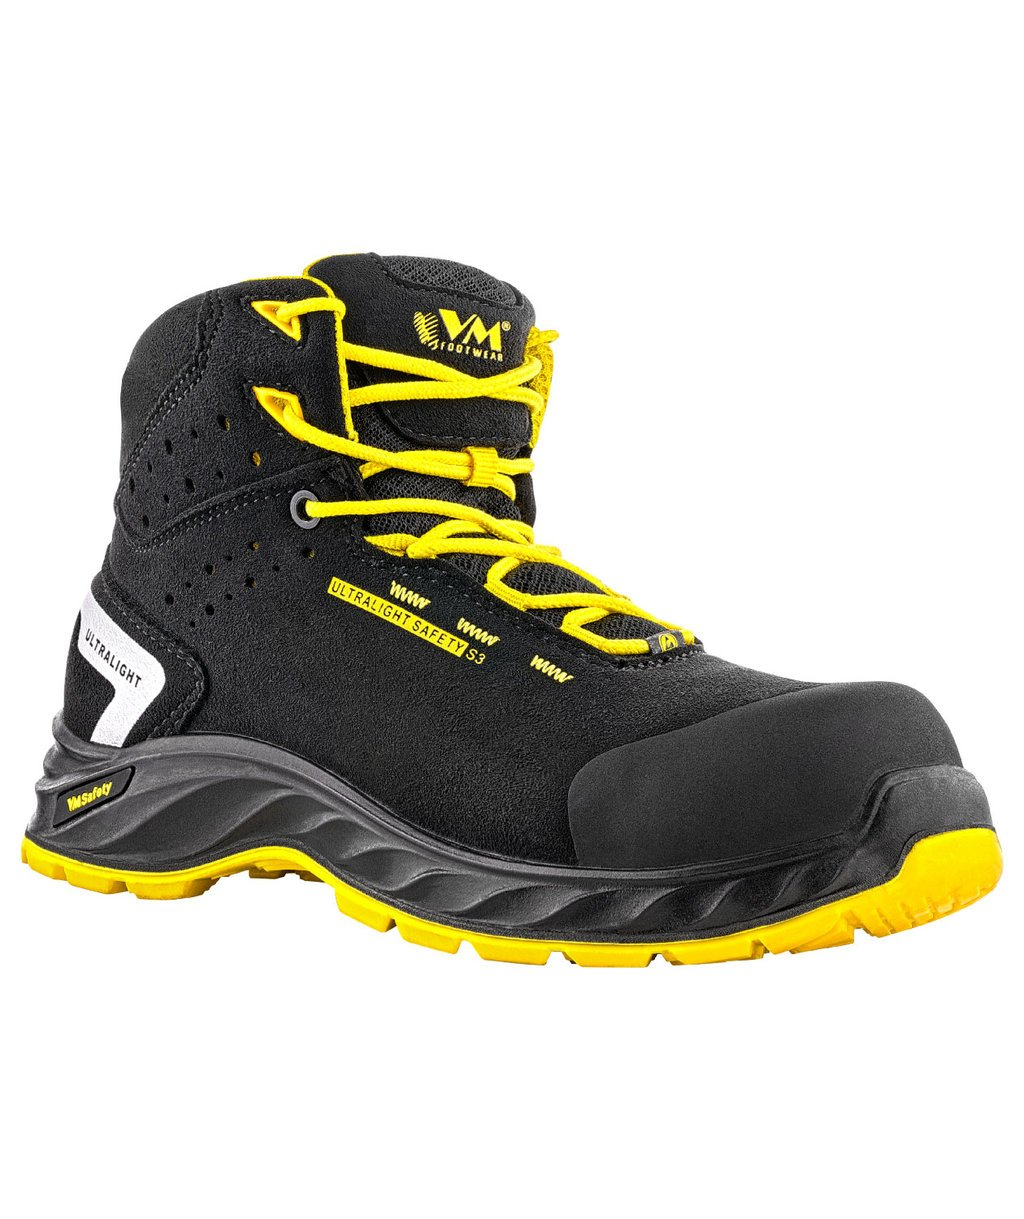 VM Footwear Wisconsion safety bootees S3, Black/Yellow